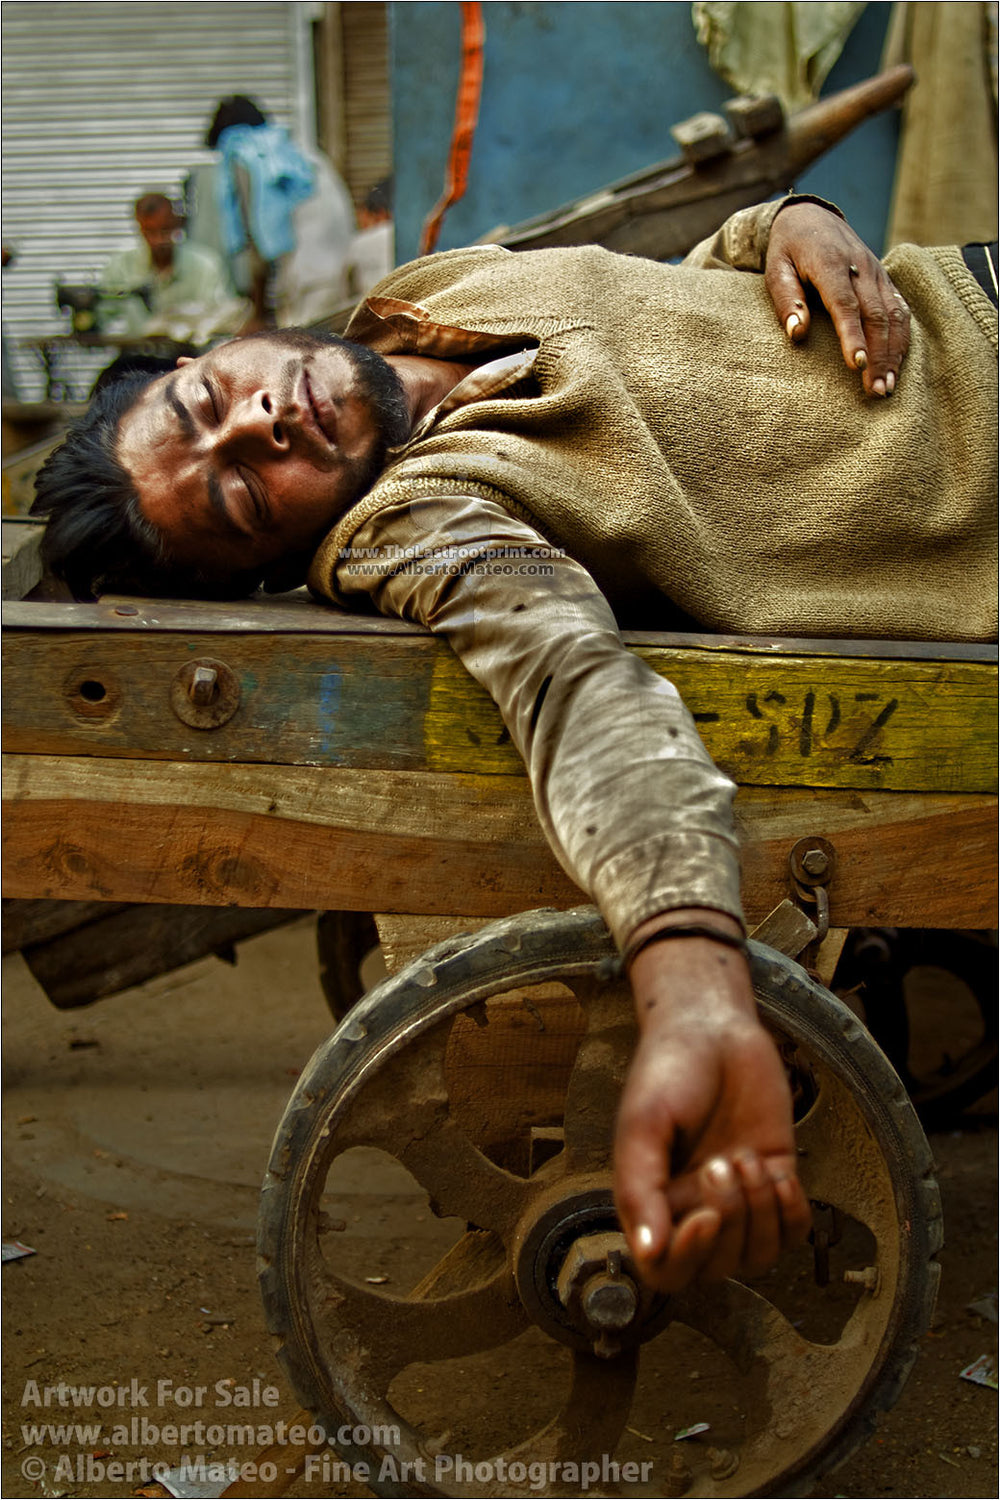 Carrier taking a nap on delivery charriot, Old Delhi. | By Alberto Mateo.